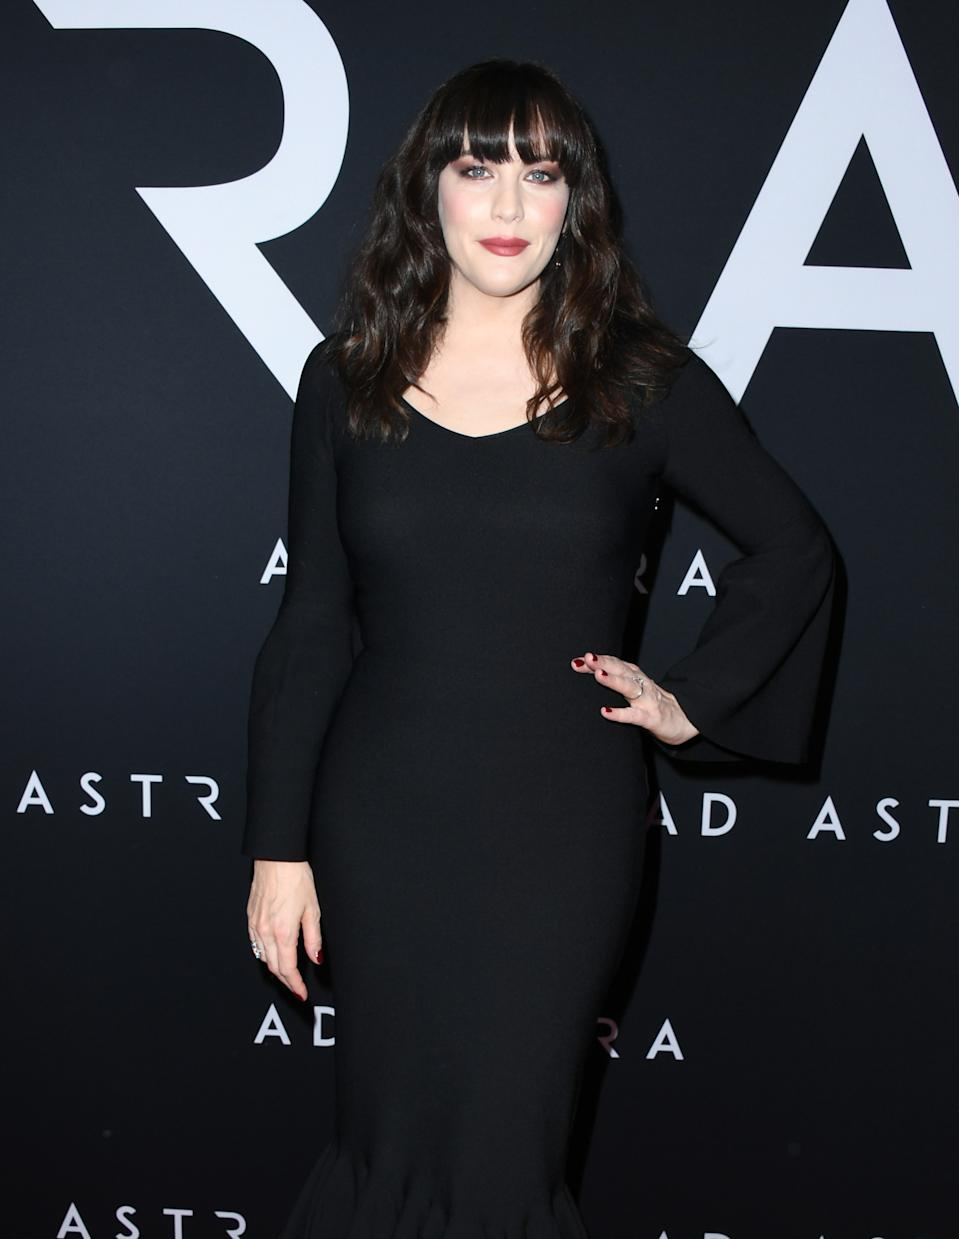 "LOS ANGELES, CALIFORNIA - SEPTEMBER 18:  Liv Tyler attends the Premiere Of 20th Century Fox's ""Ad Astra"" at The Cinerama Dome on September 18, 2019 in Los Angeles, California. (Photo by Jon Kopaloff/FilmMagic)"